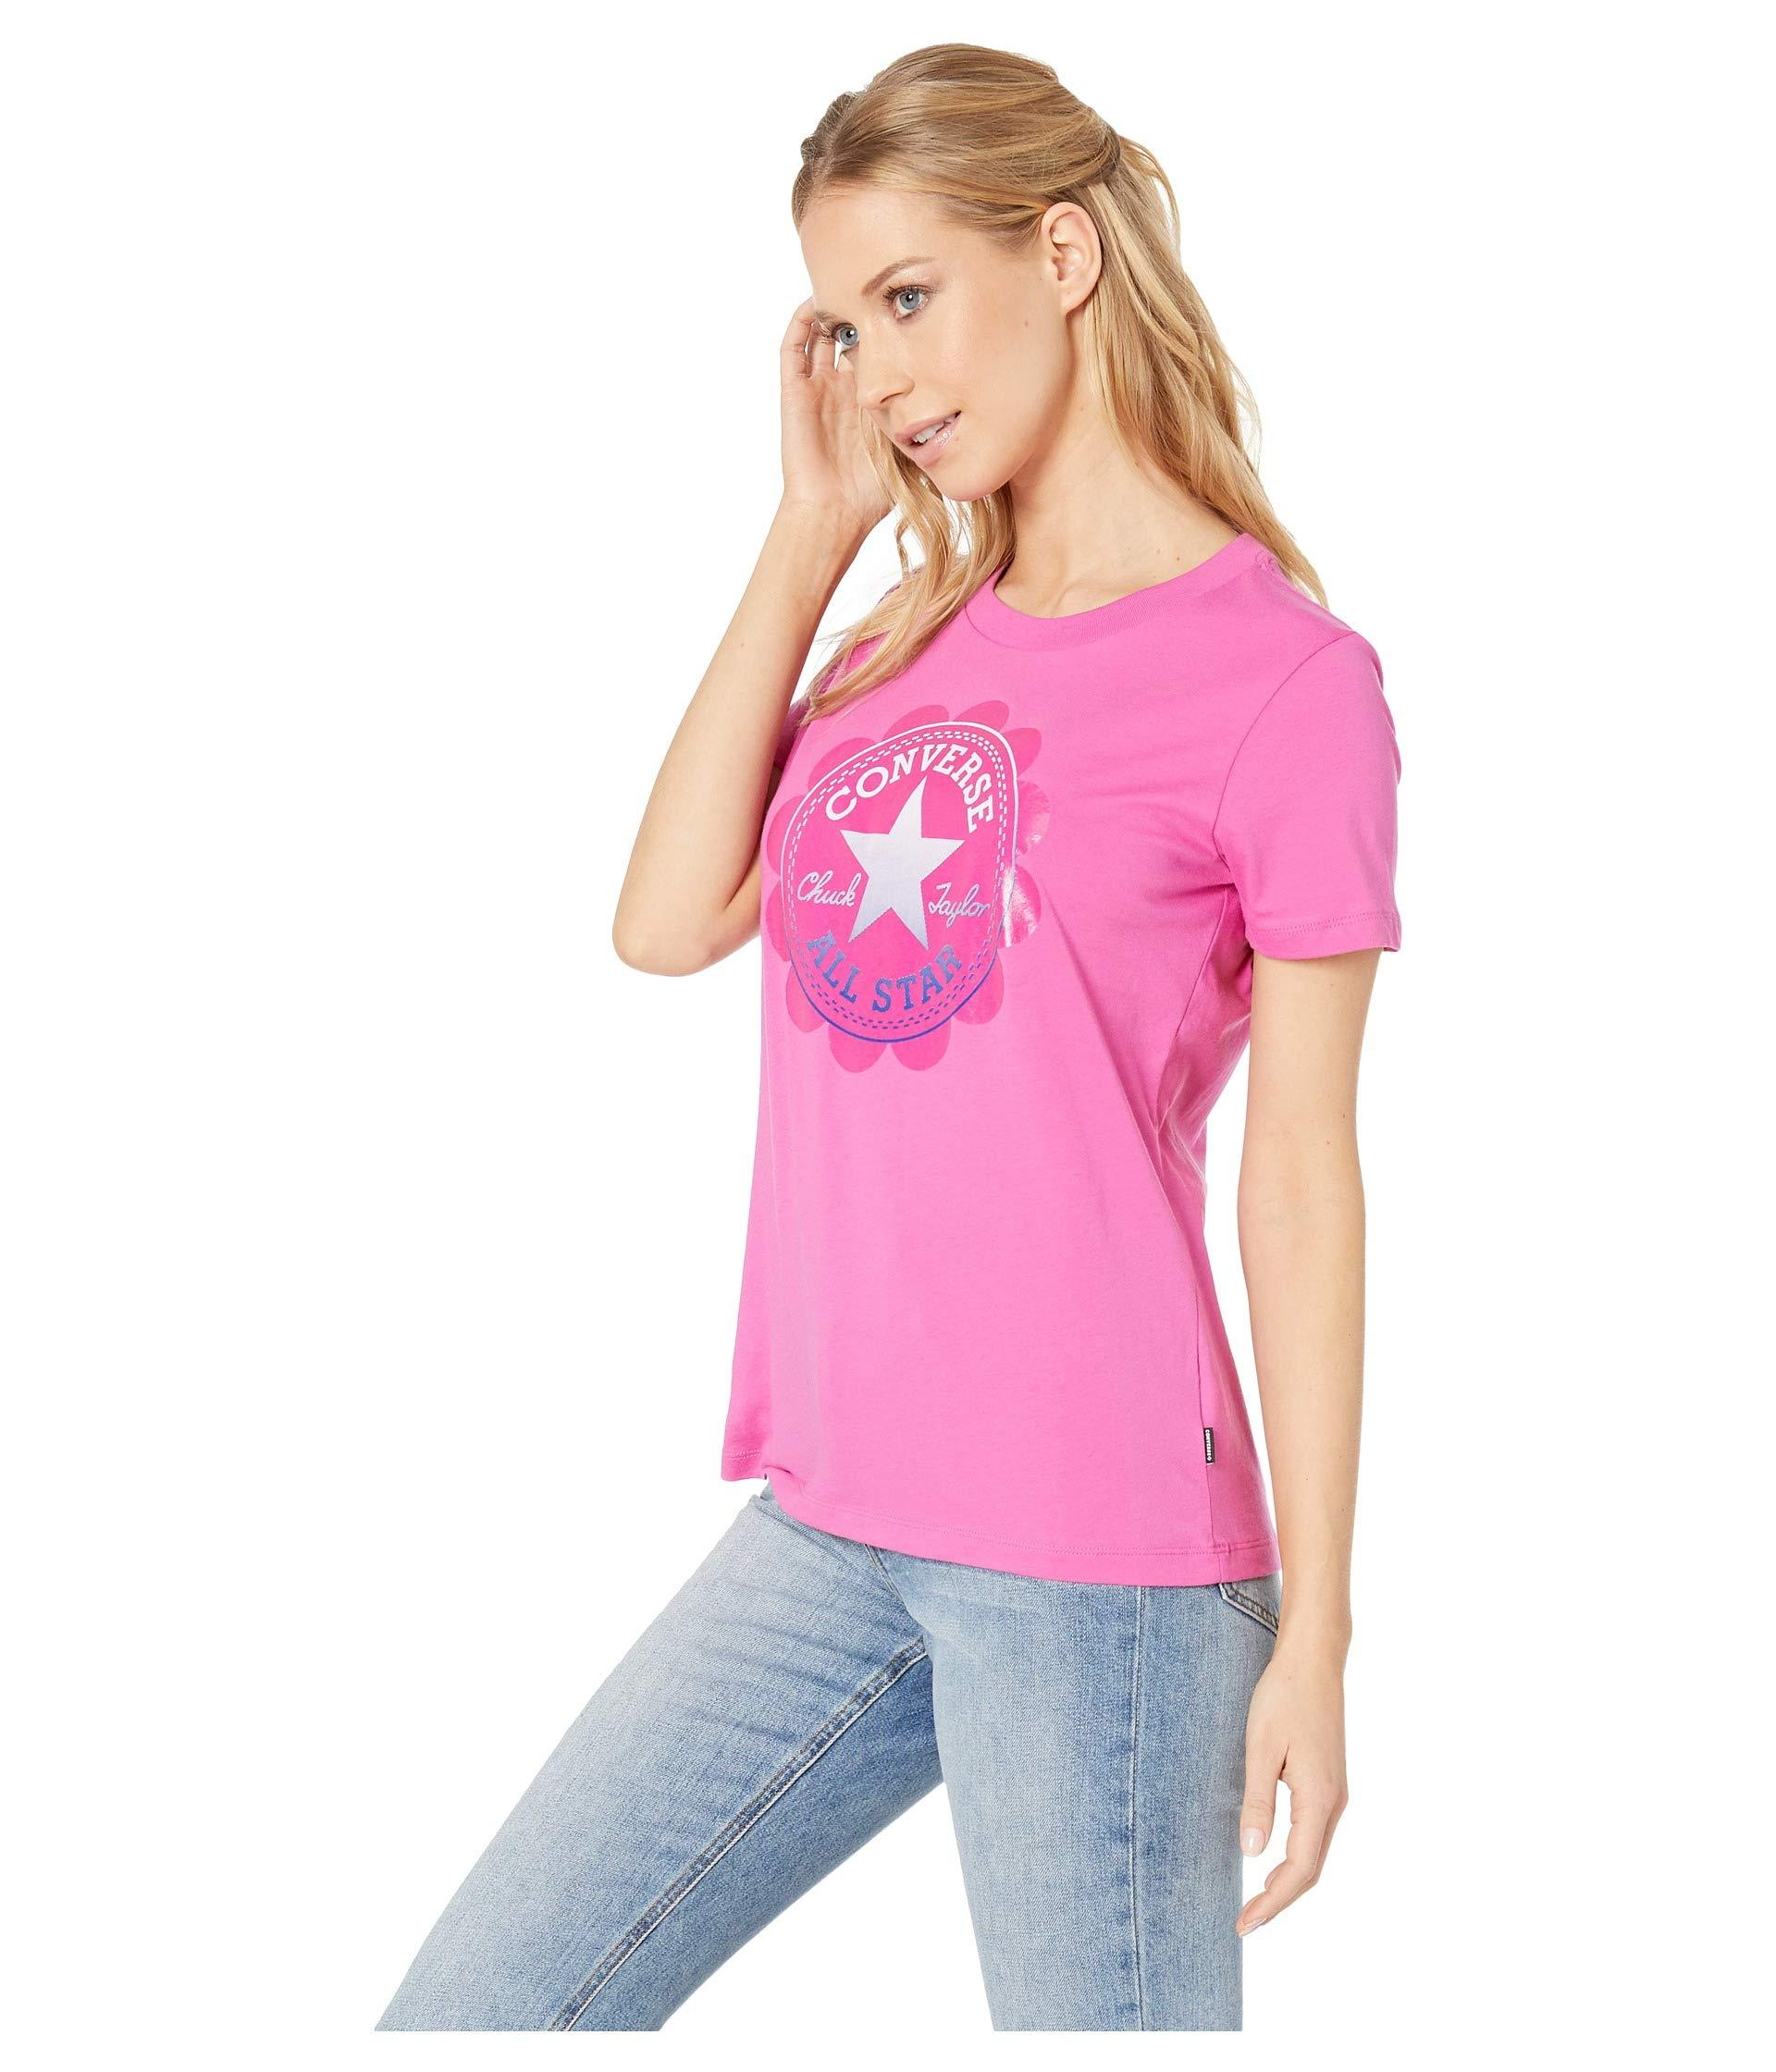 04cf30ab827 Lyst - Converse Ombre Chuck Patch Short Sleeve Tee (celestial Teal) Women s  T Shirt in Pink